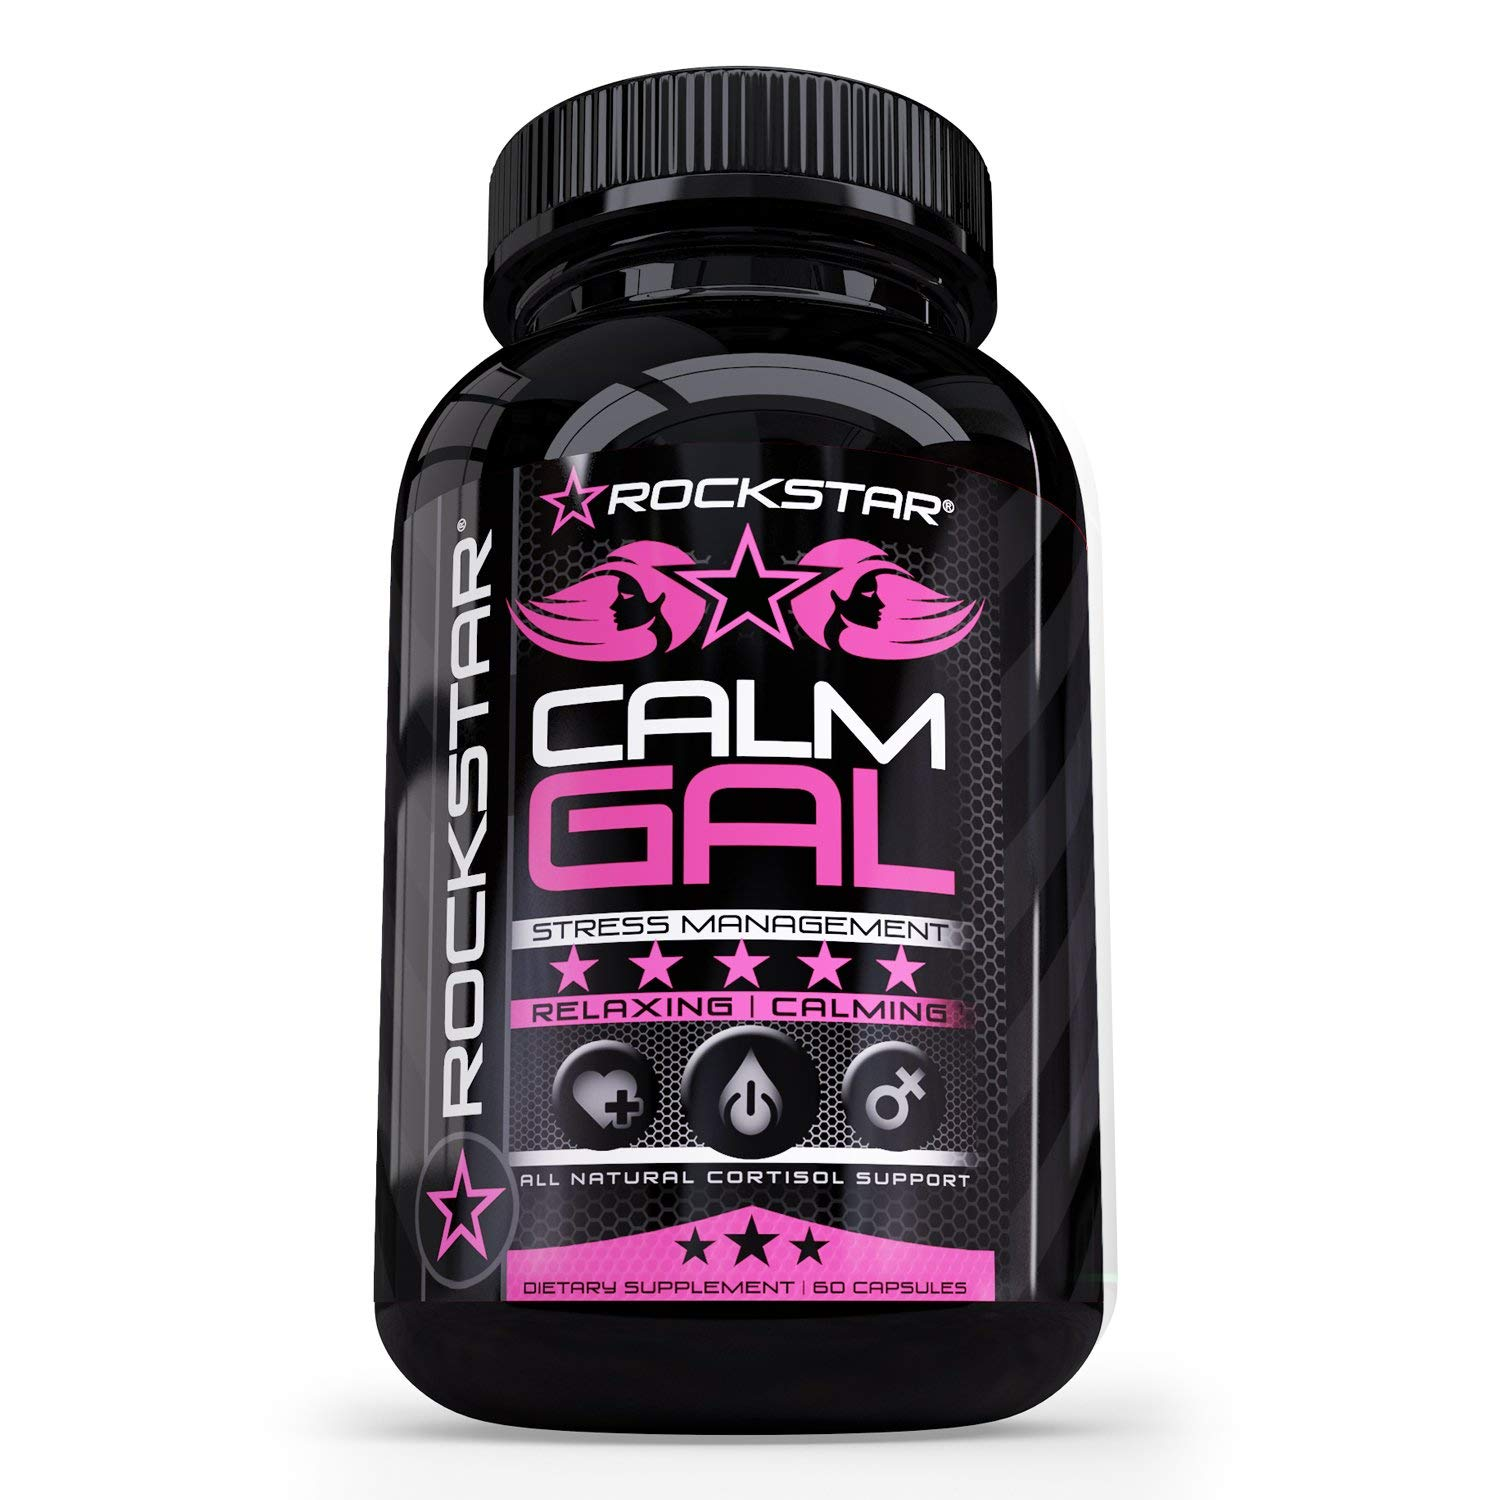 Calm Gal by Rockstar - Stress & Anxiety Support Supplement, Herbal Blend to Keep Busy Minds Relaxed, Natural Herbal Formula Developed to Promote Calm, Relaxed, Positive Mood